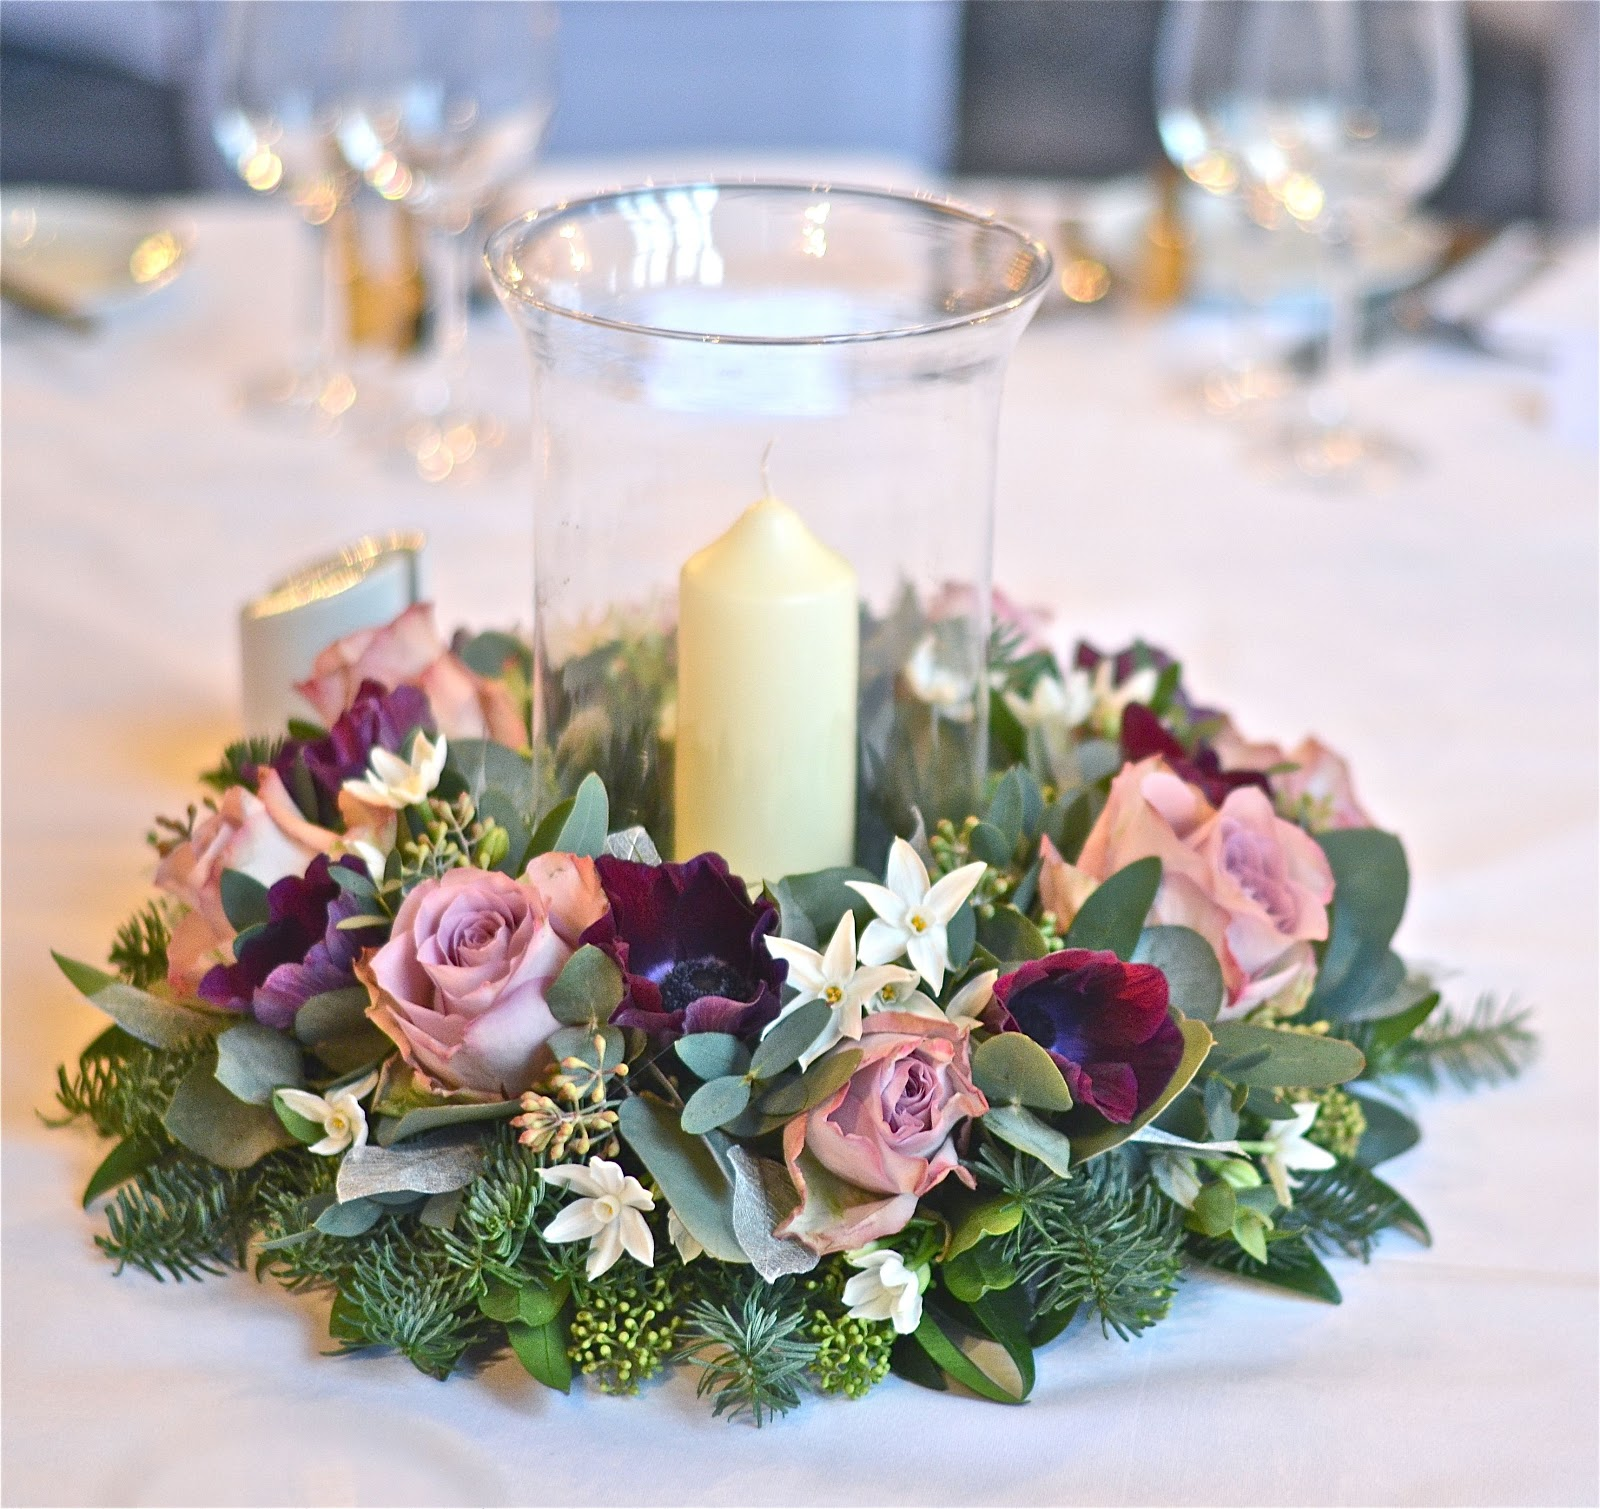 Wedding Flowers Blog: Lacey's Plum And Silver Winter